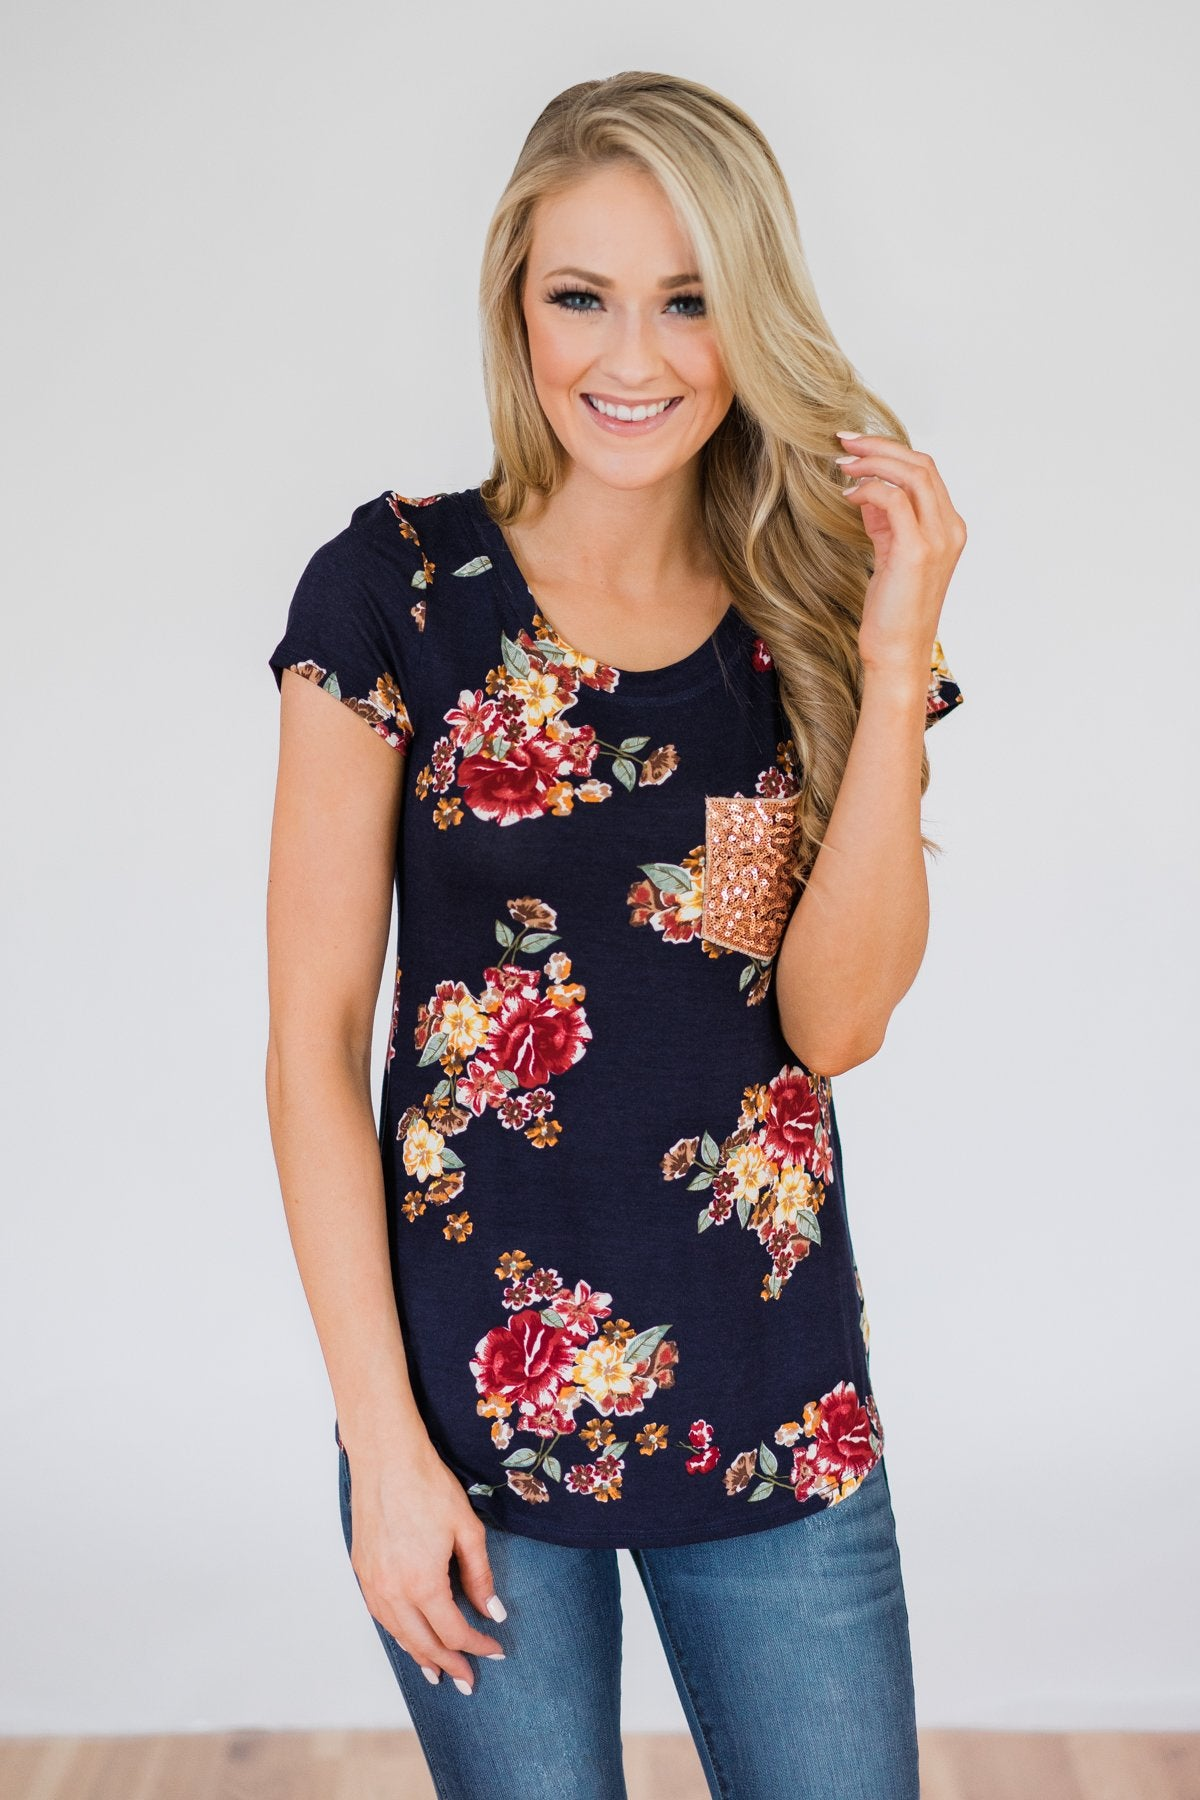 Naturally Beautiful Floral Tank Top- Navy